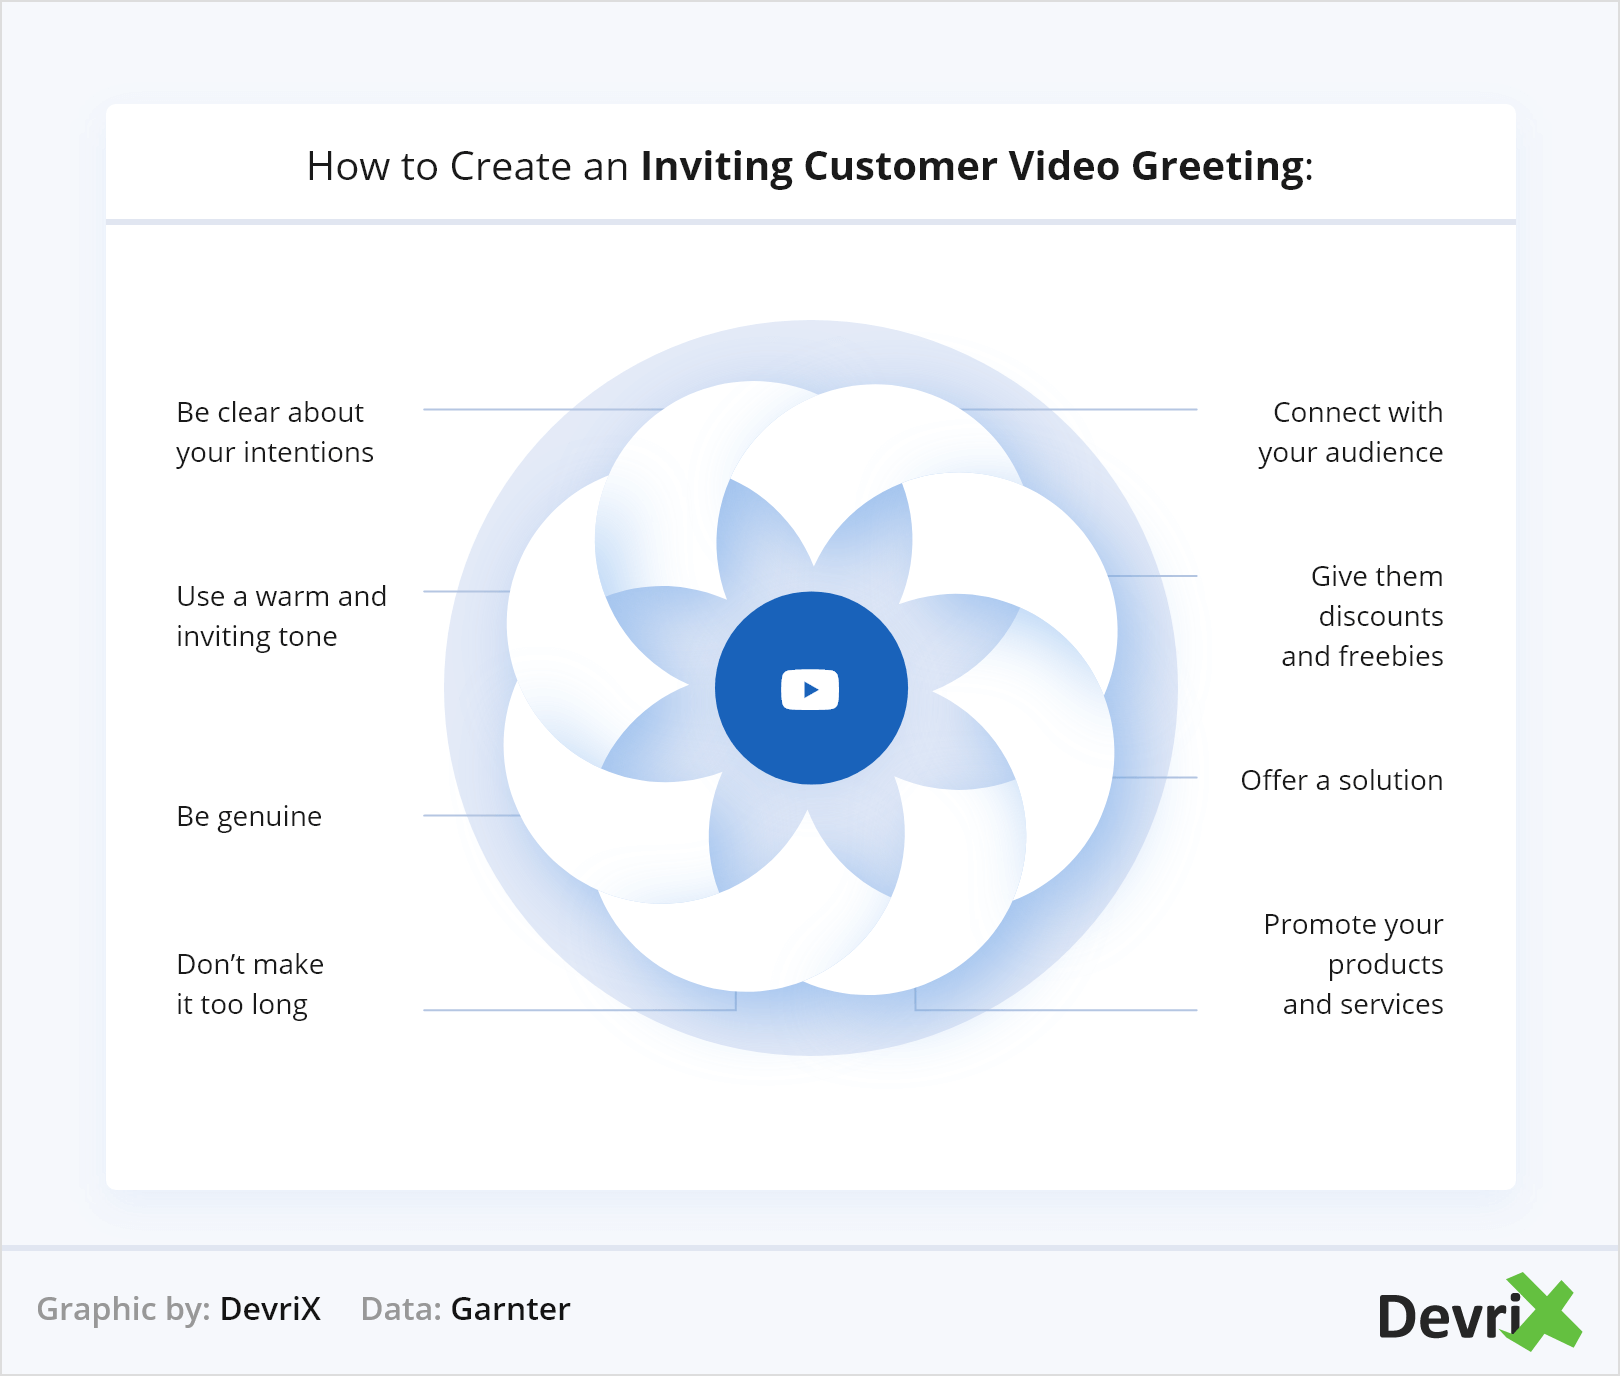 How to Create an Inviting Customer Video Greeting